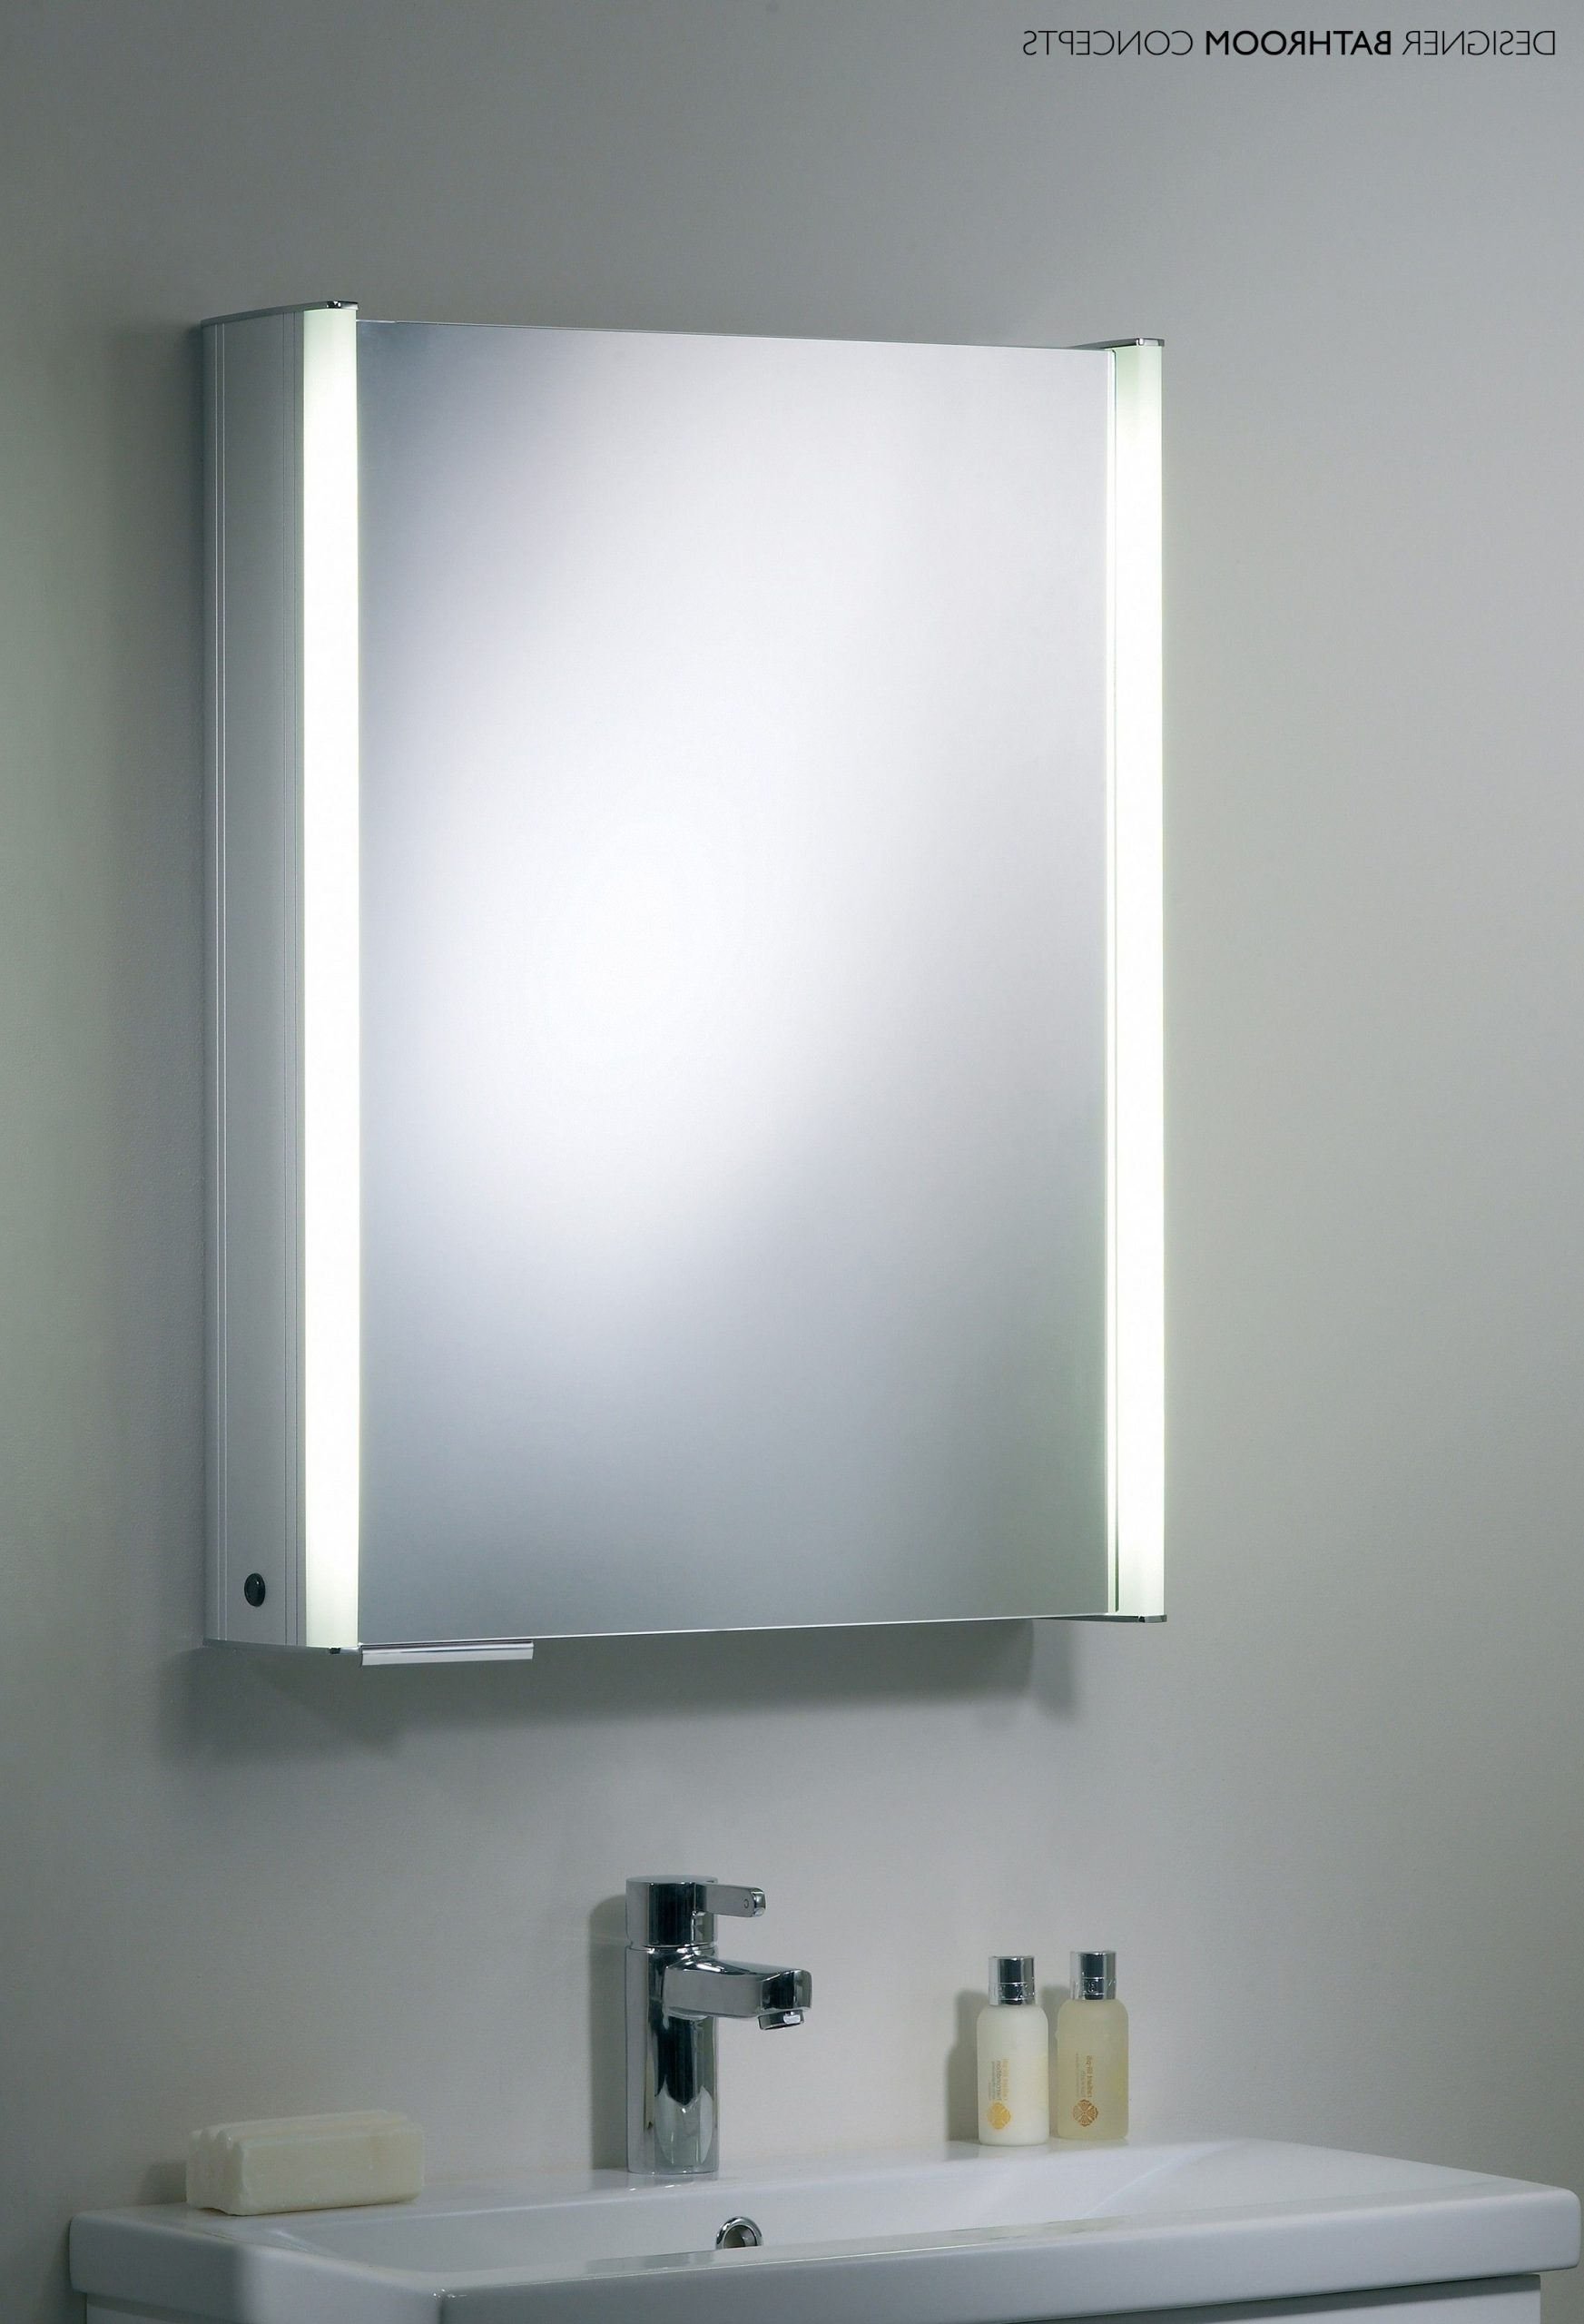 What To Consider When Shopping For Bathroom Mirror Cabinets 30+ Neue Design Led Illuminated Bathroom Mirror Cabinet Inspirations